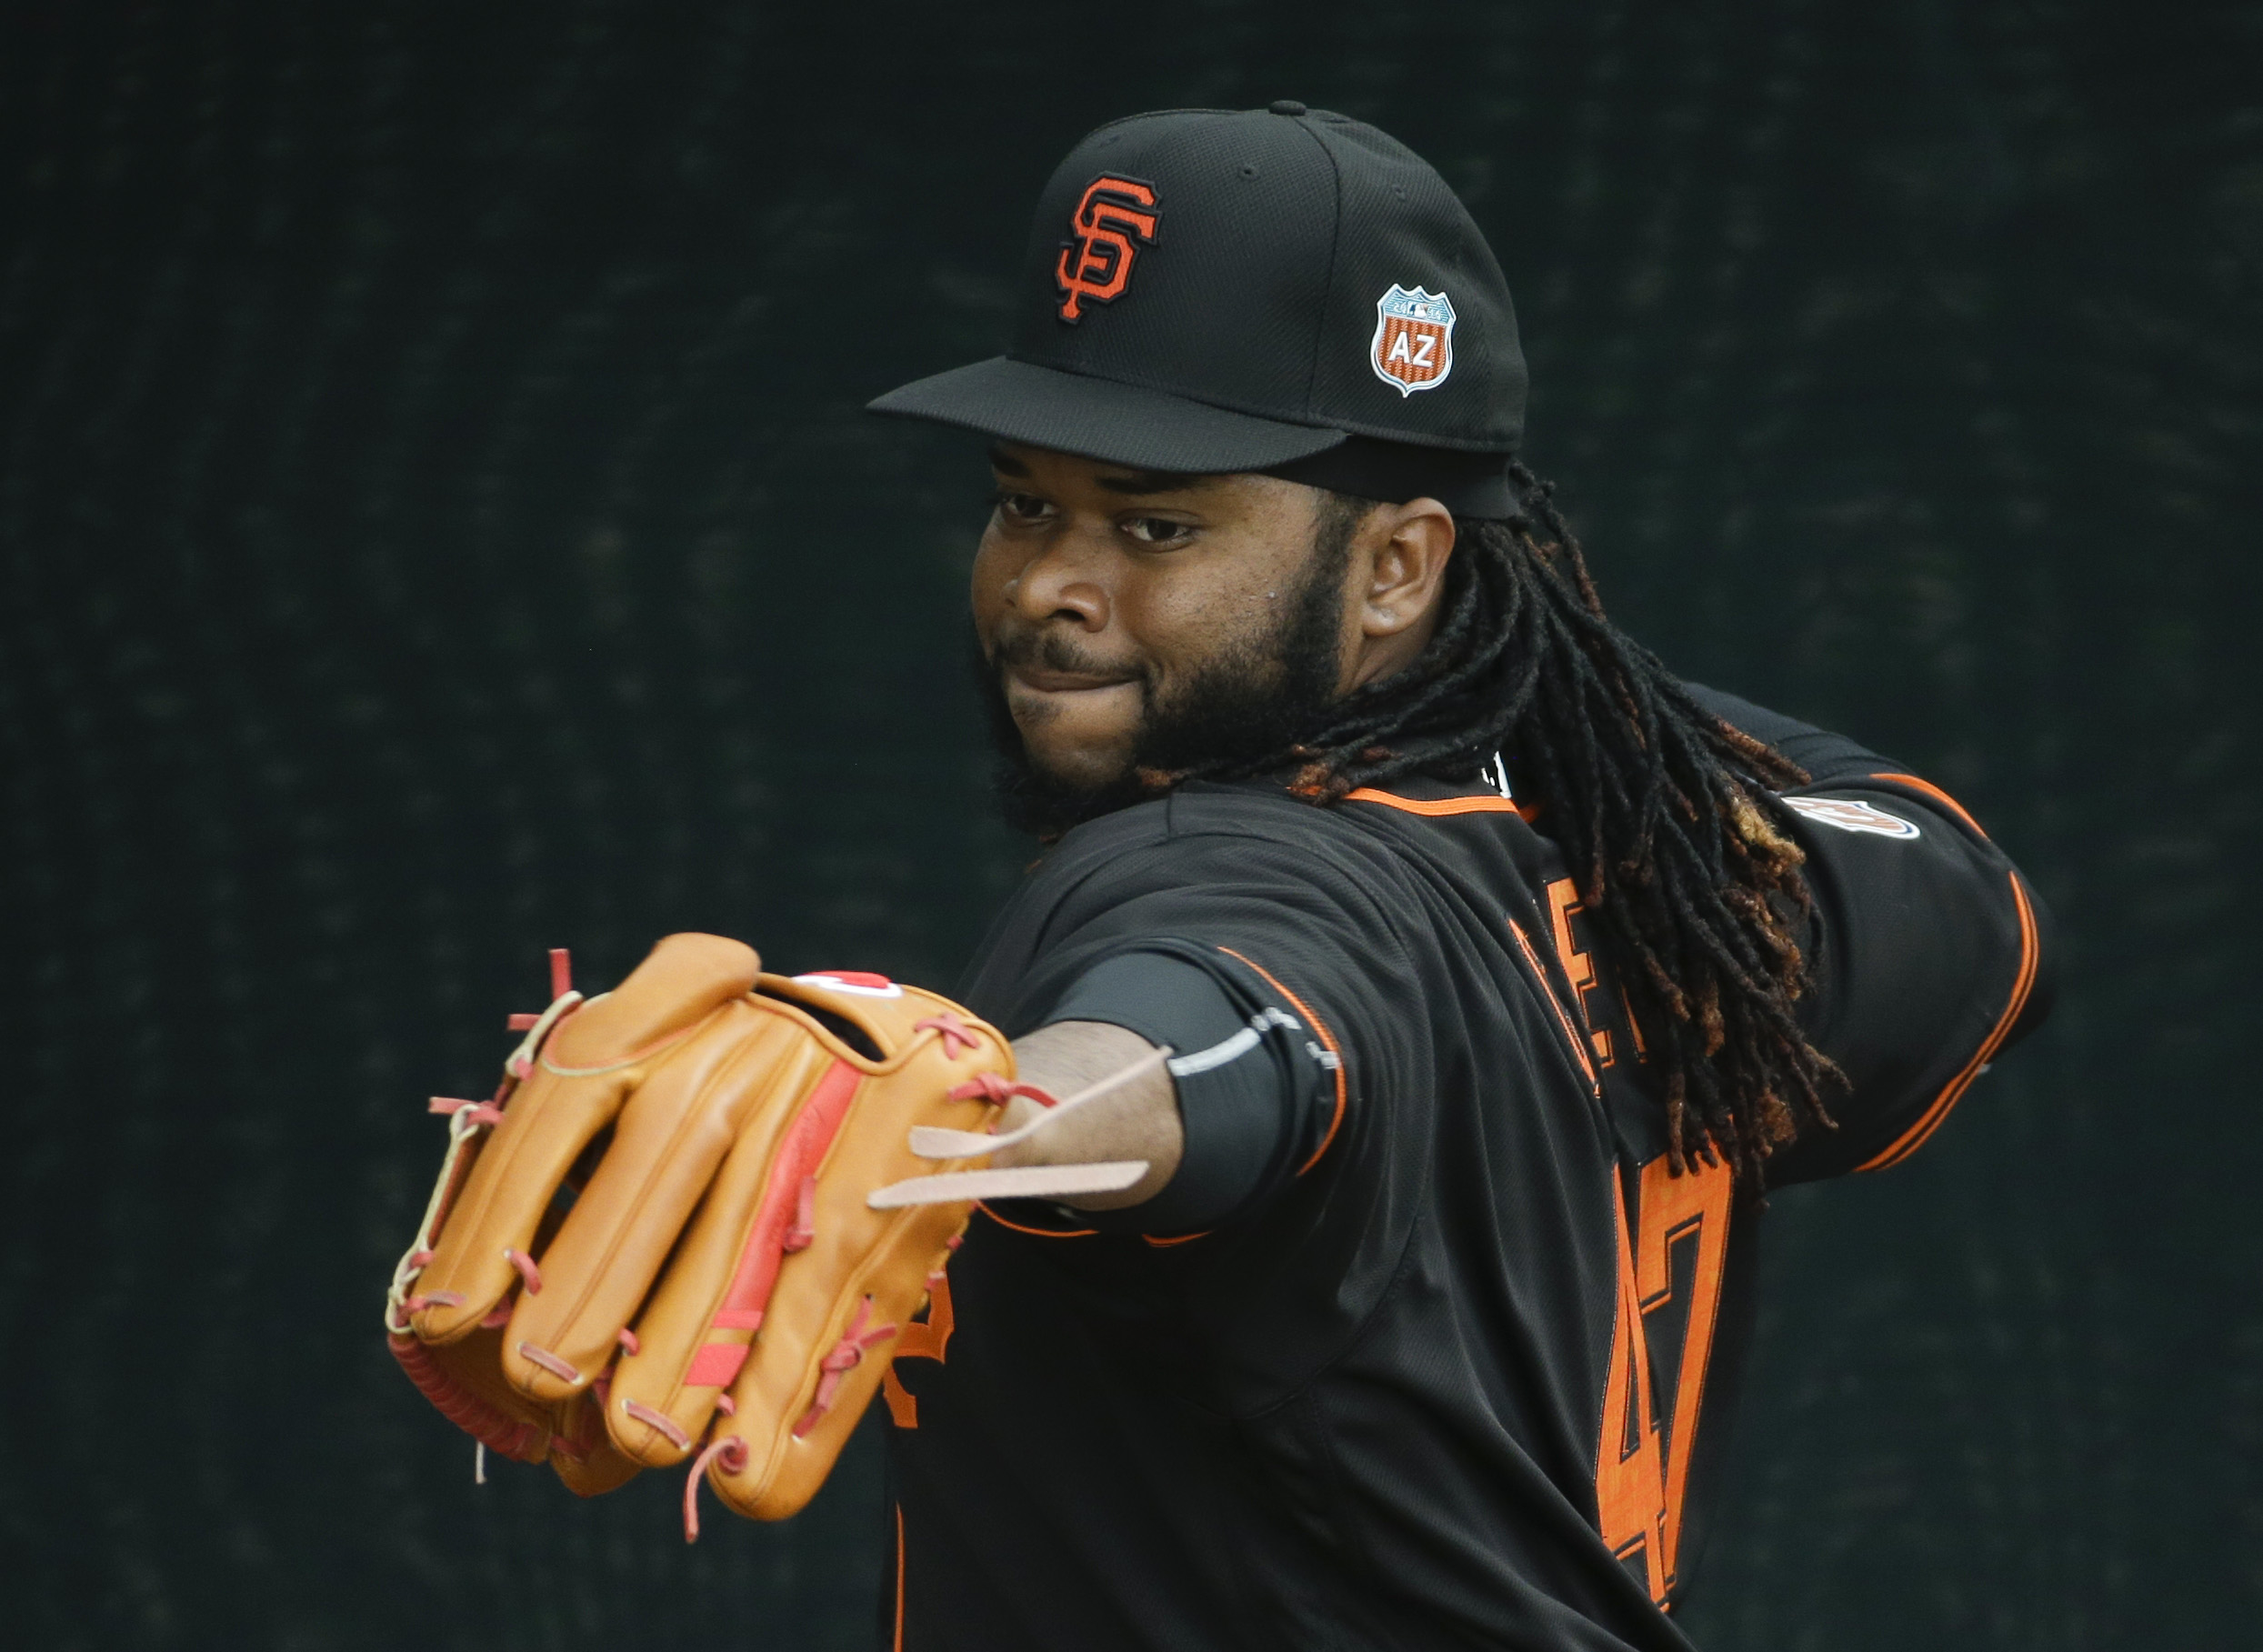 San Francisco Giants pitcher Johnny Cueto warms up during practice for the spring baseball season in Scottsdale, Ariz., Thursday, Feb. 18, 2016. (AP Photo/Chris Carlson)